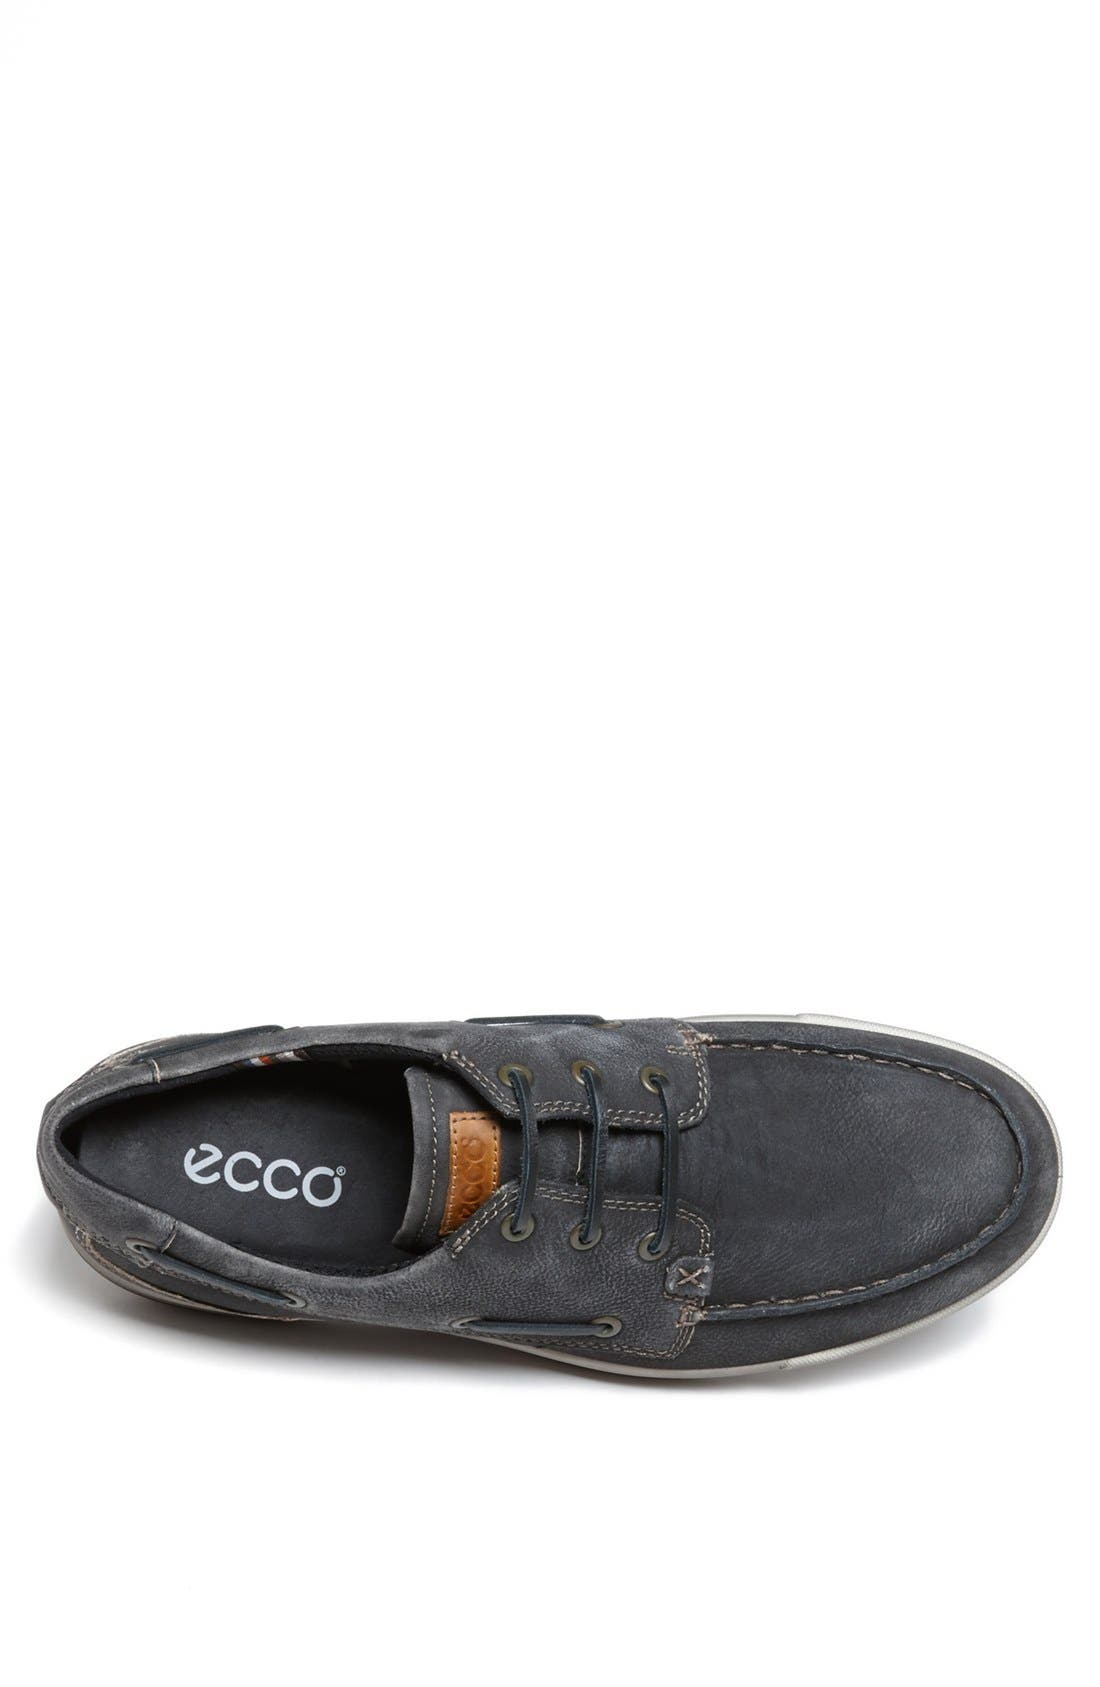 Alternate Image 3  - ECCO 'Androw' Boat Shoe (Men)